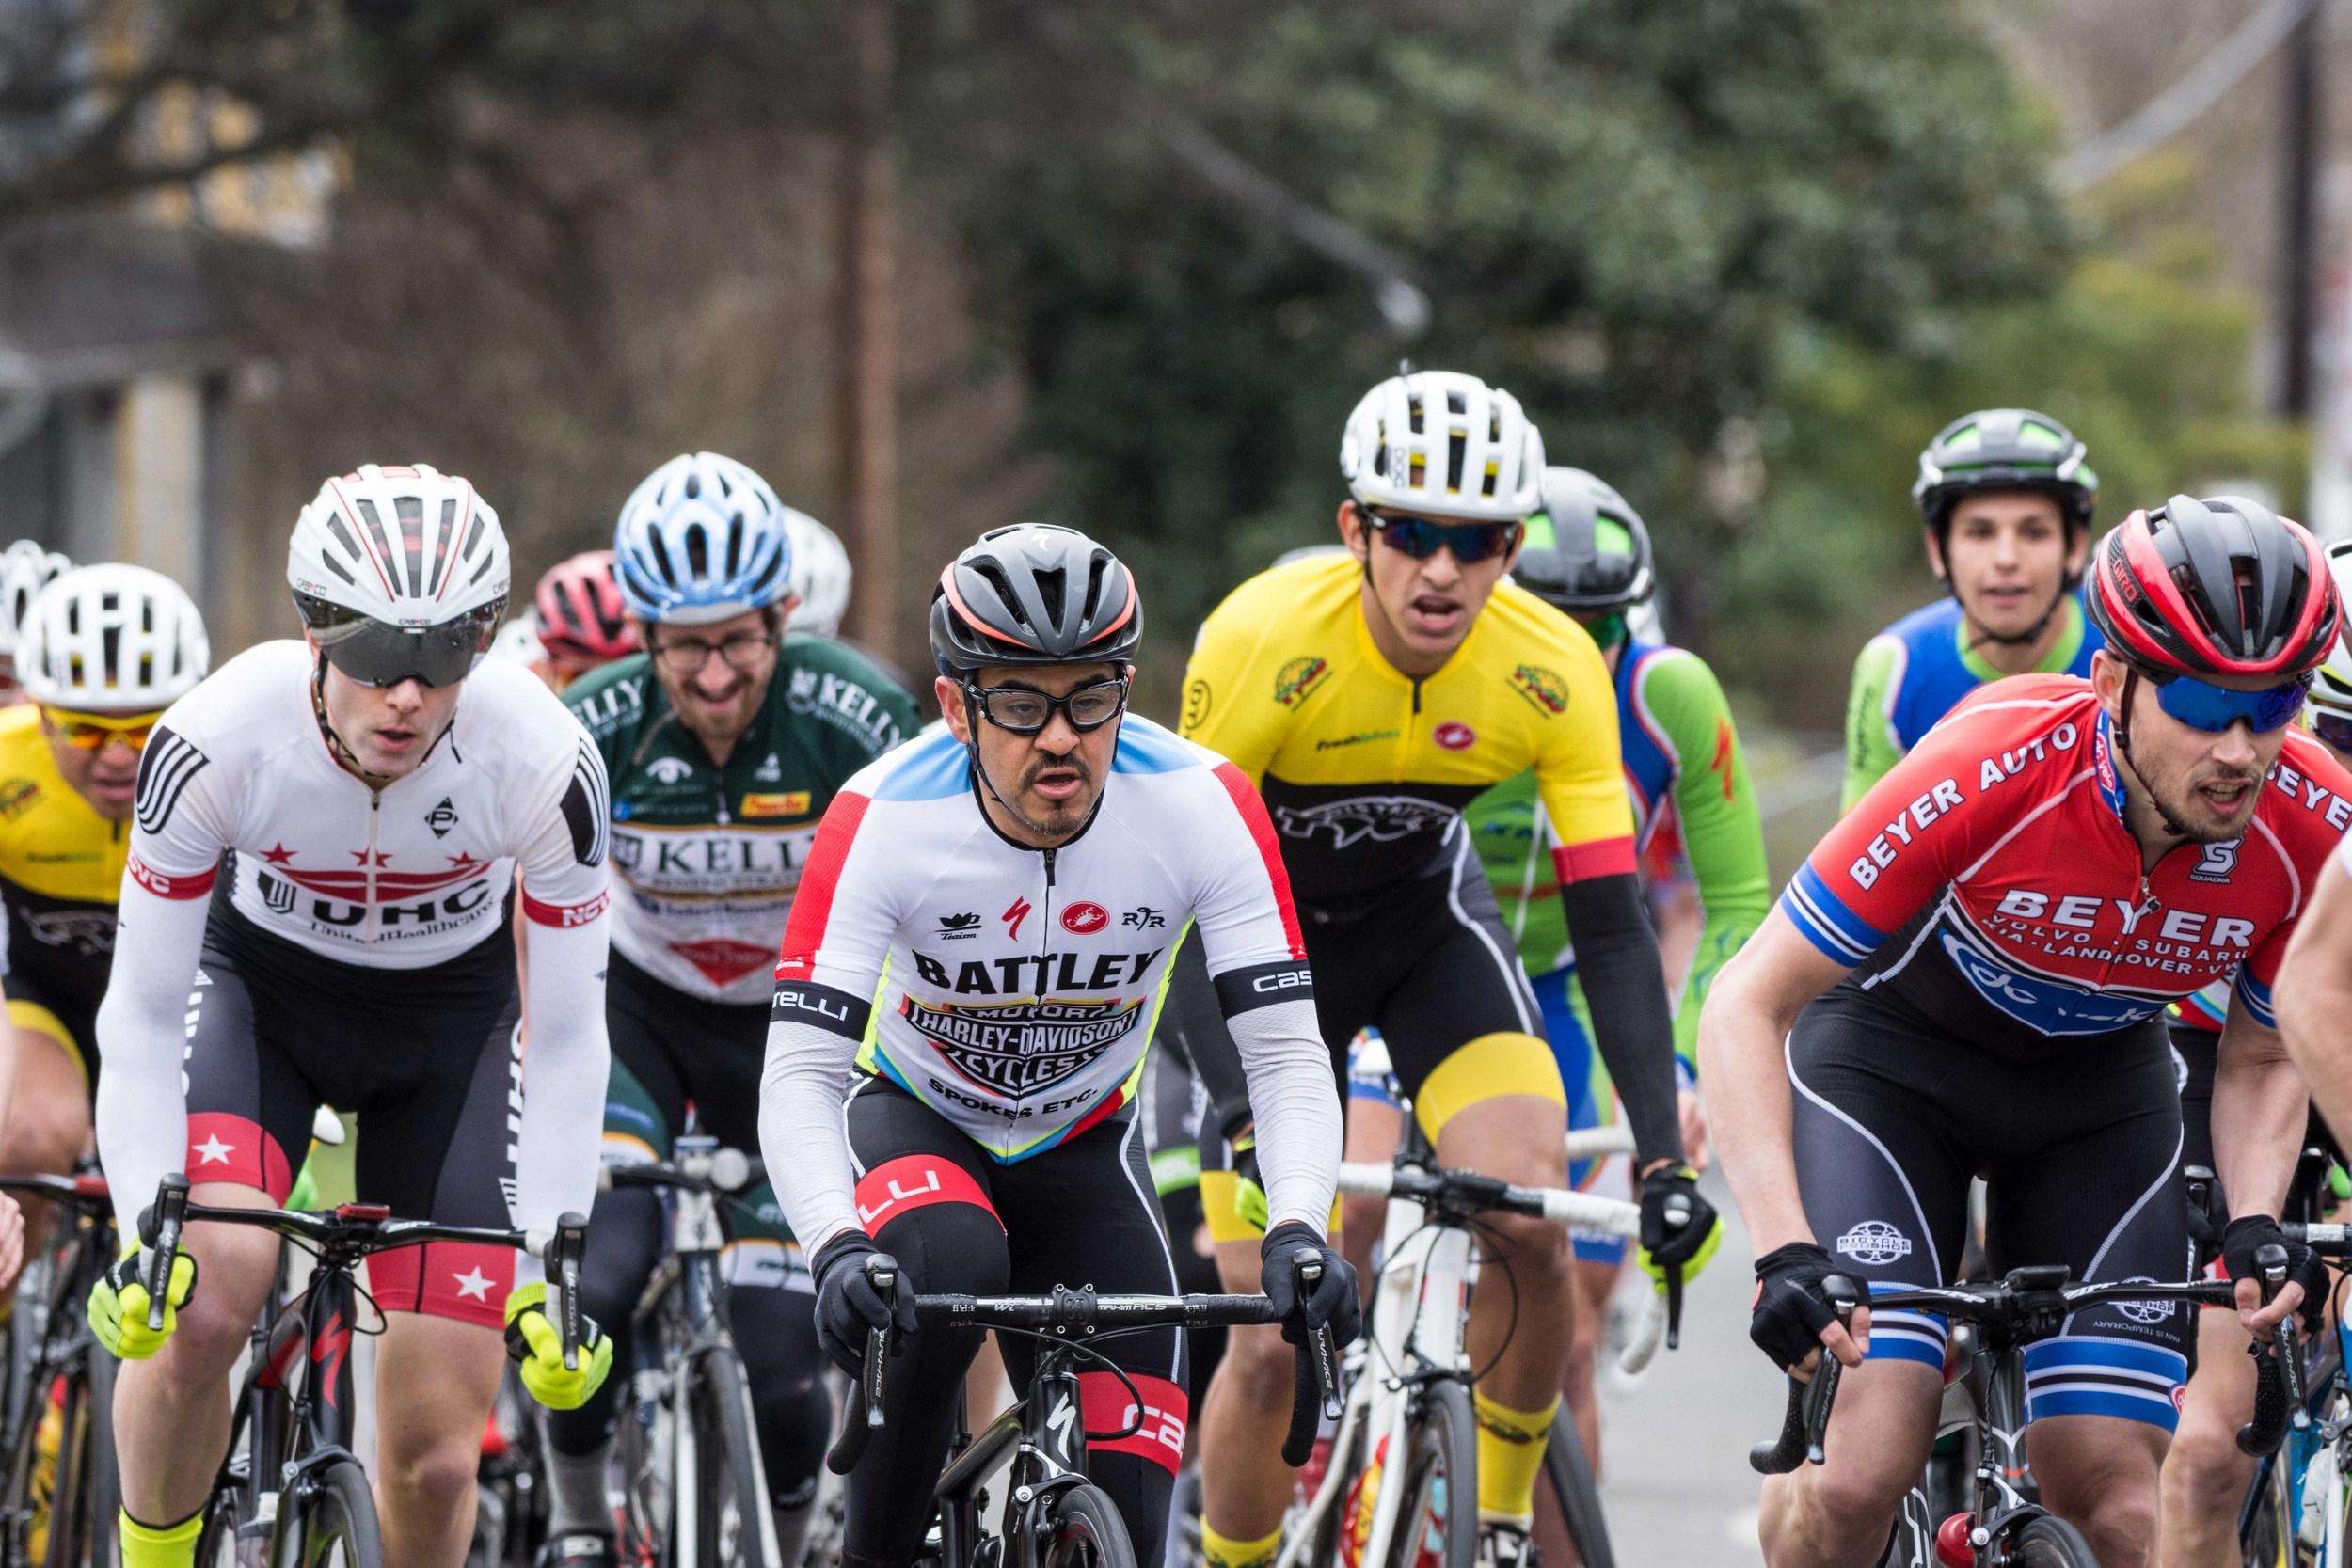 20160312110554 Route One Rampage Criterium 0574.jpg